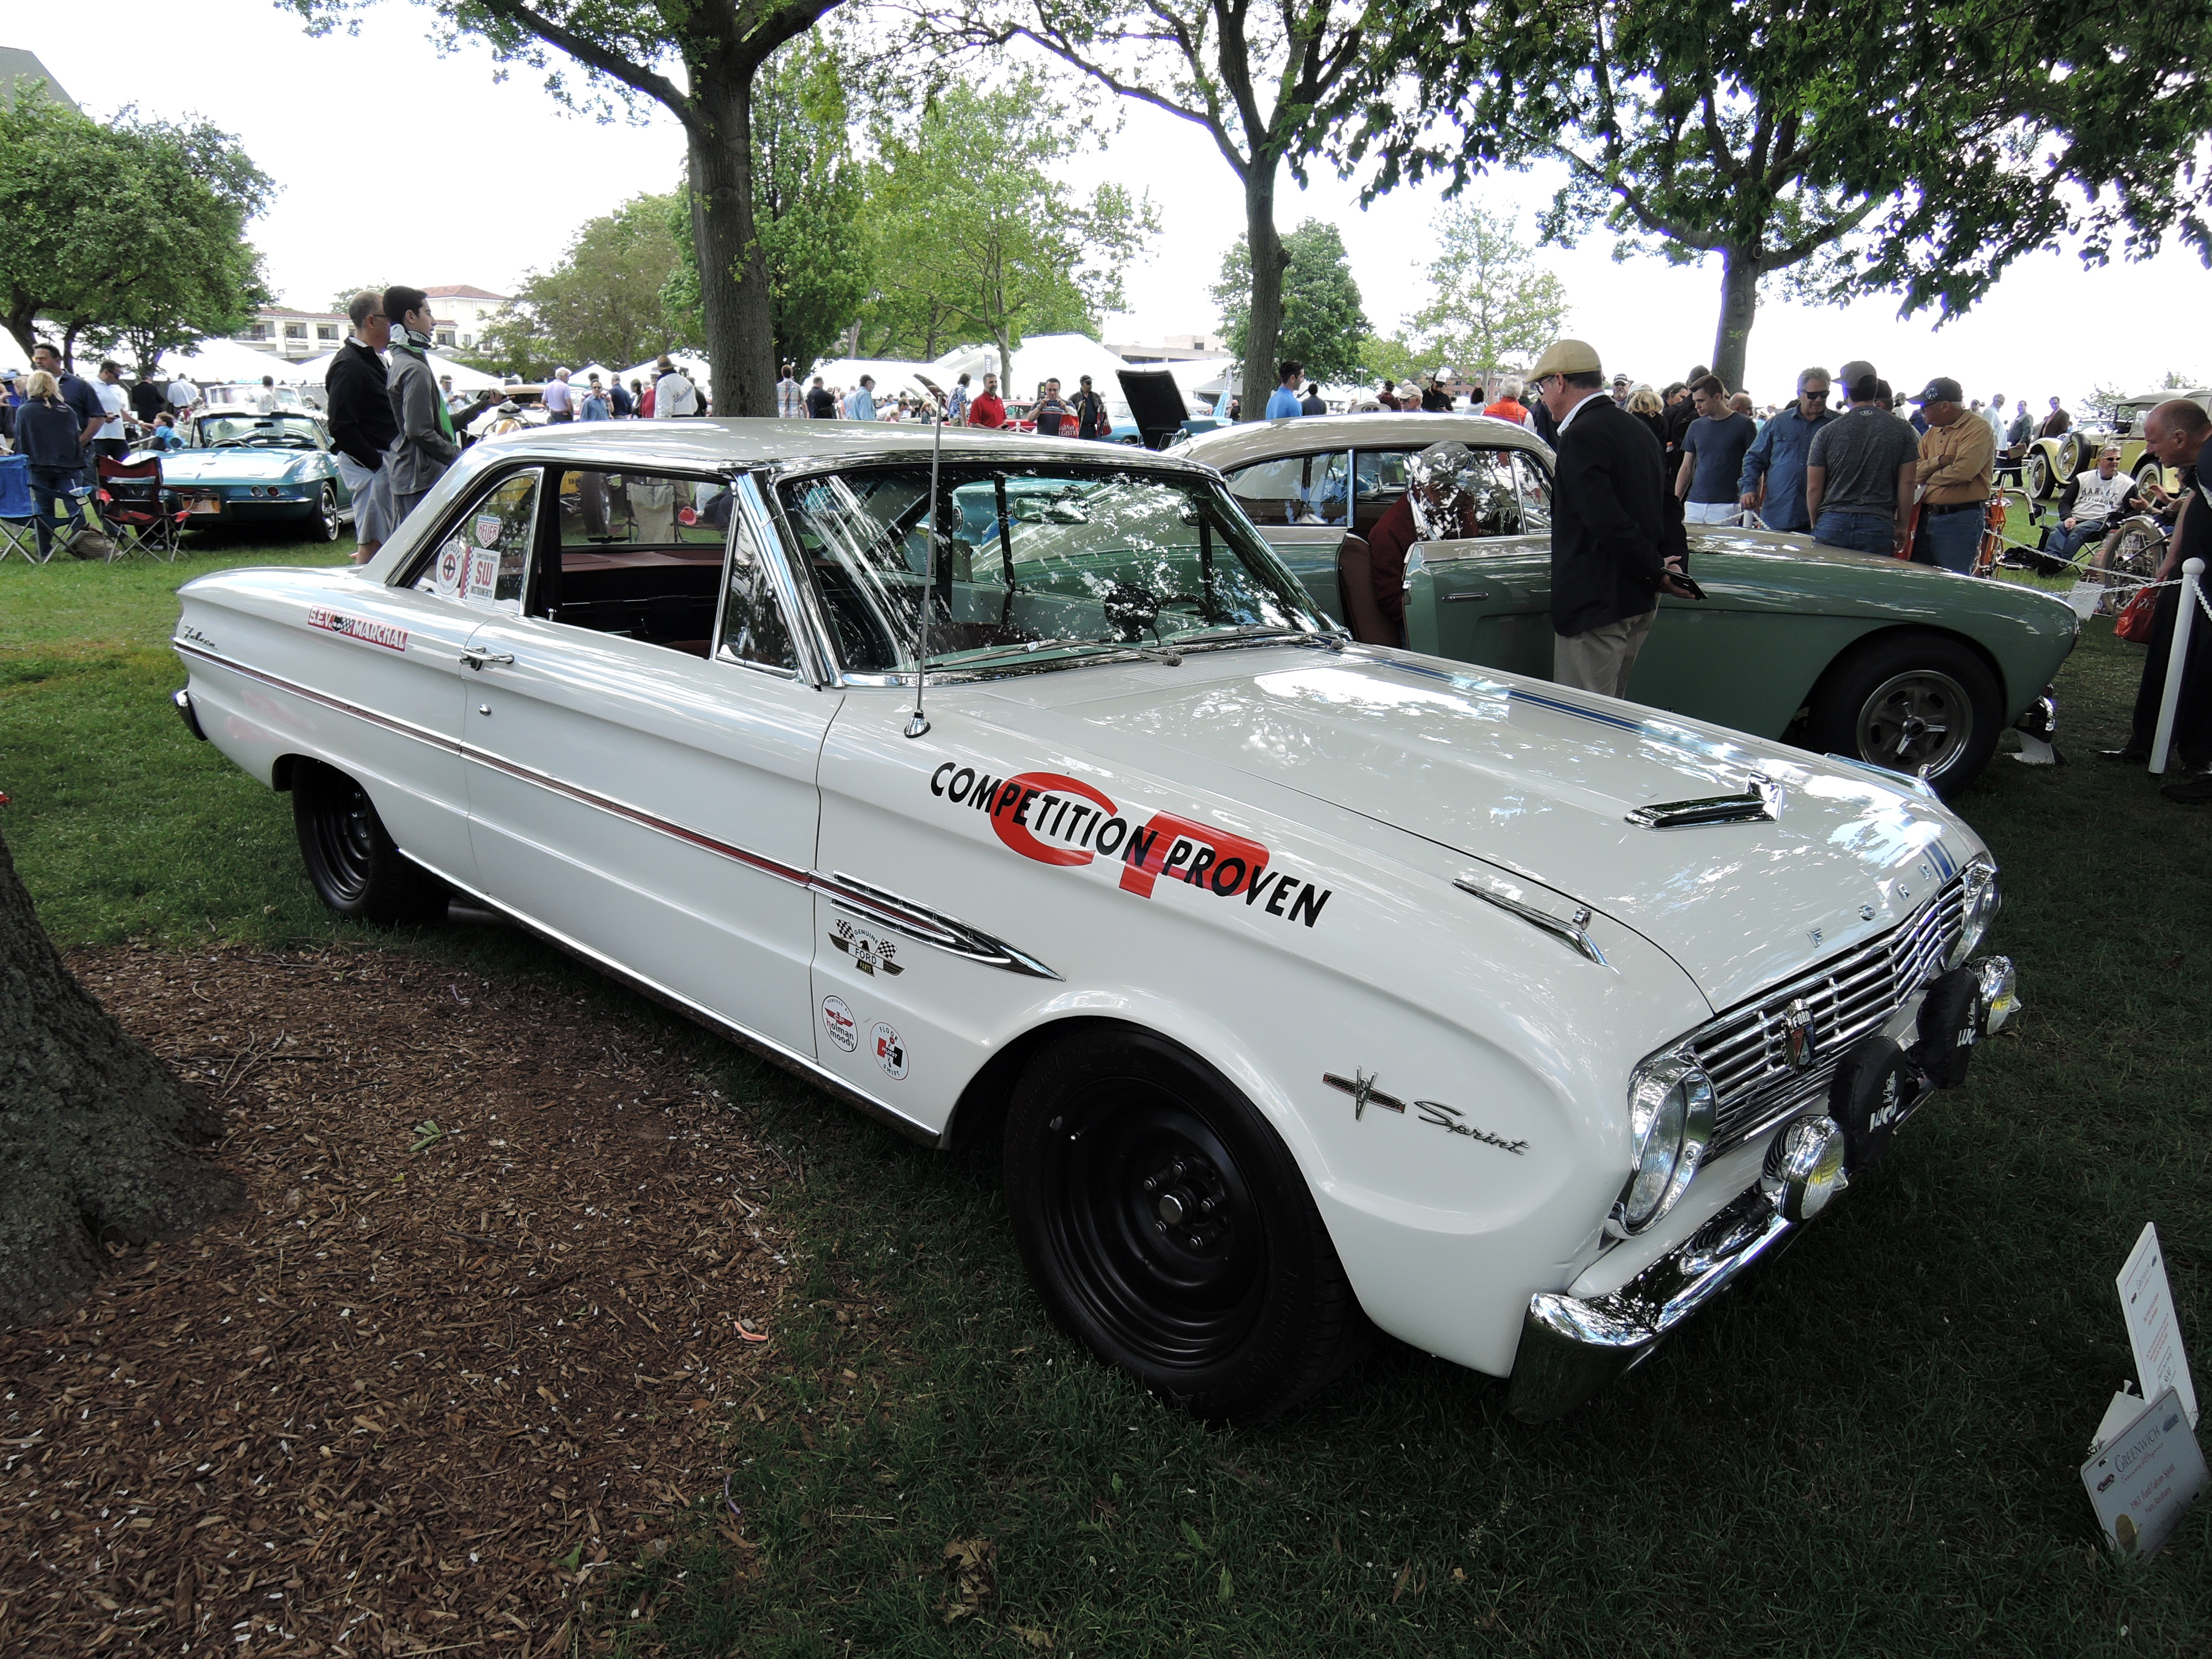 white 1963 Ford Falcon Sprint - Greenwich Concours d'Elegance 2017